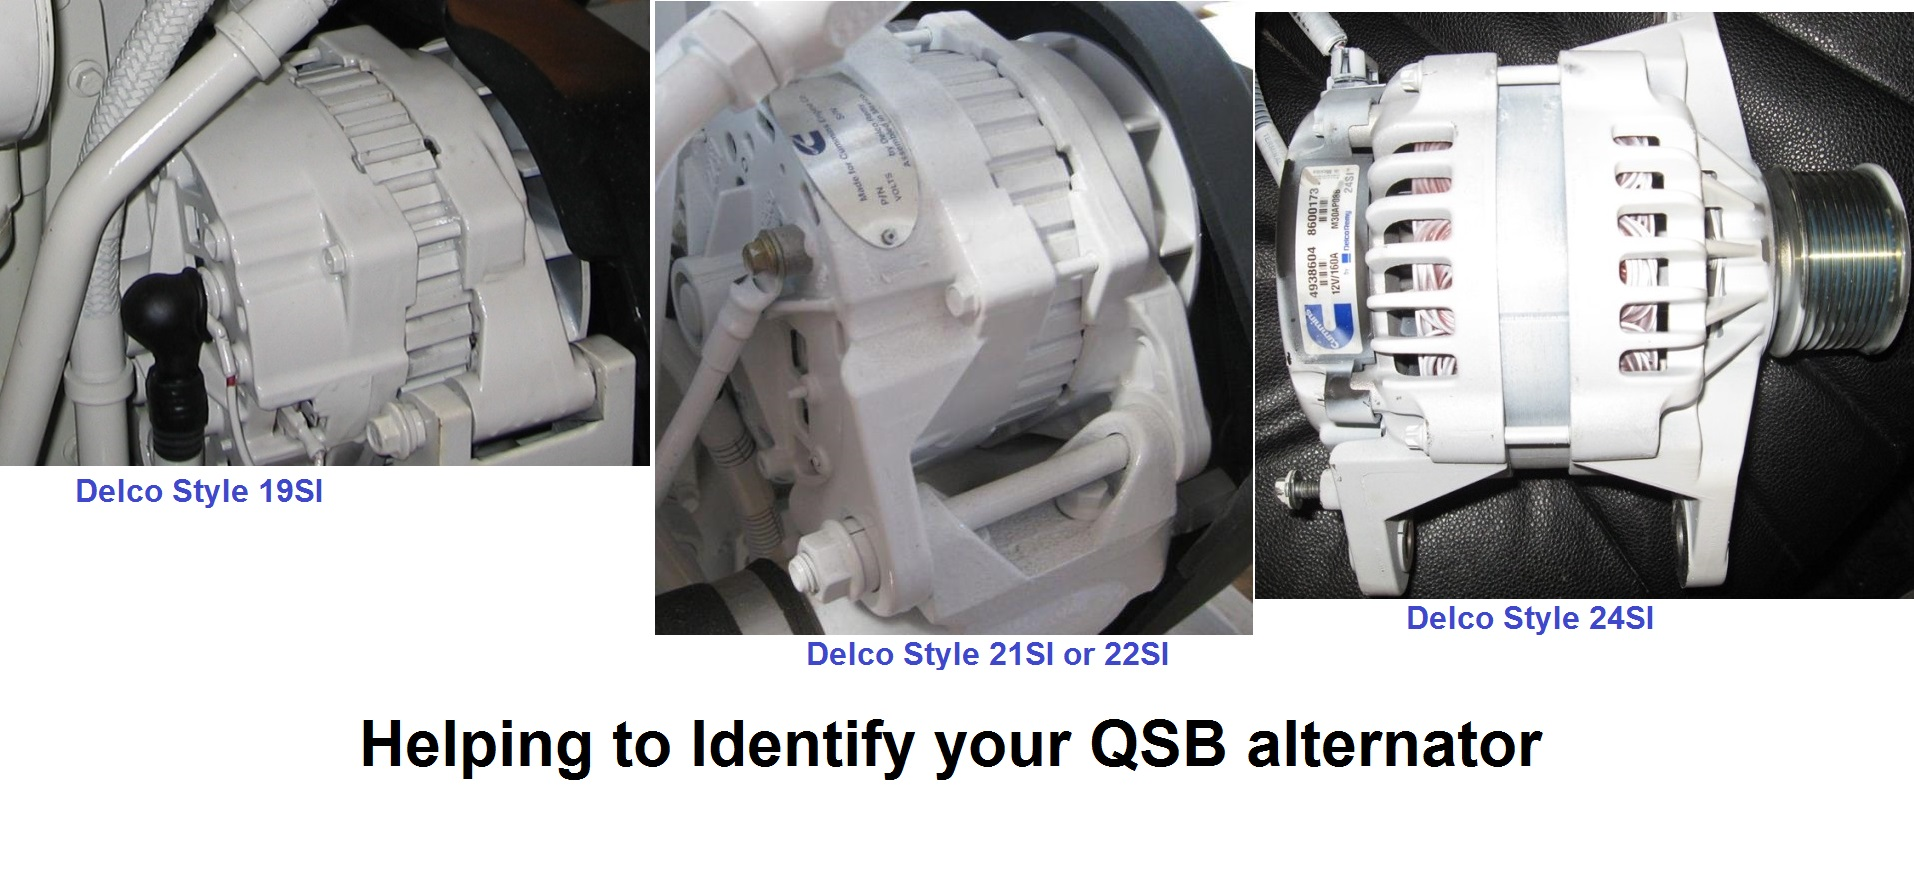 identifying the alternator on the qsb 5 9